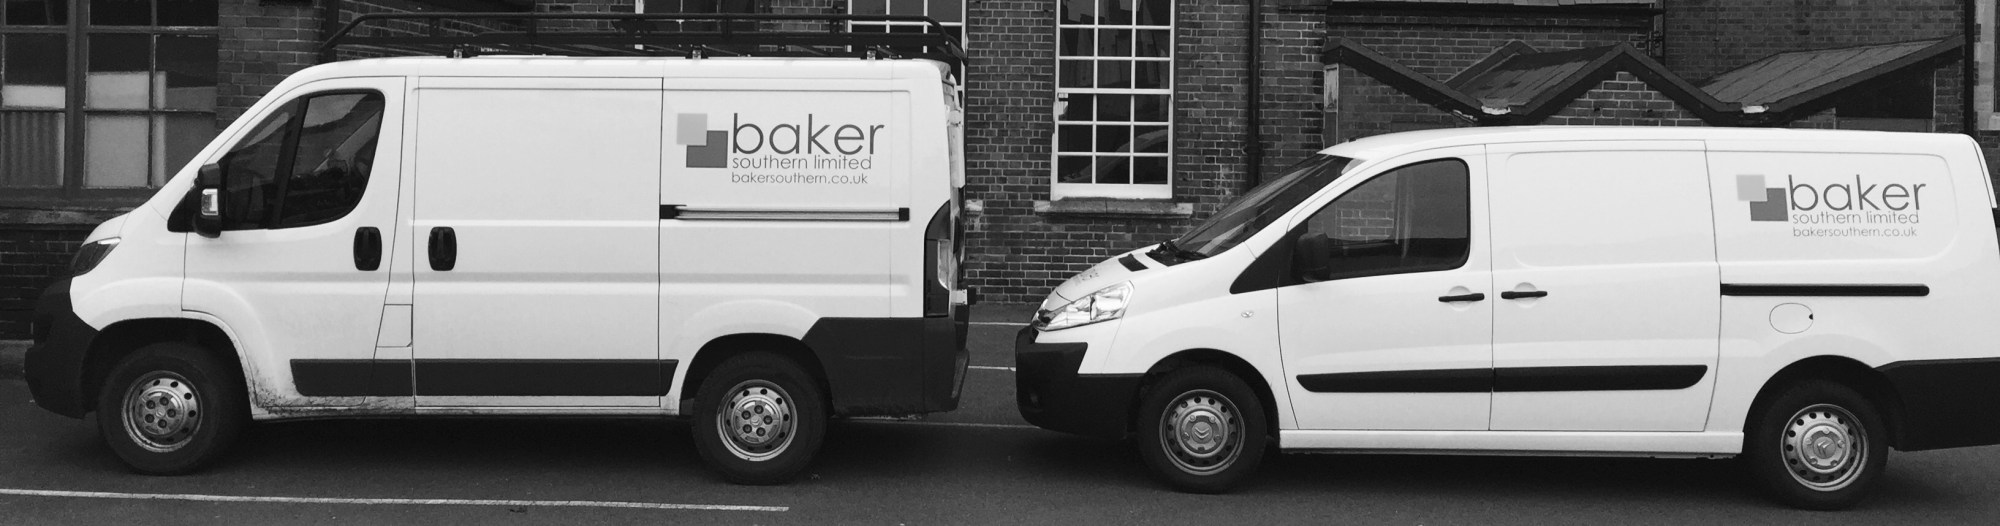 Baker Southern Ltd Specialist heritage decorating and refurbishment contractors